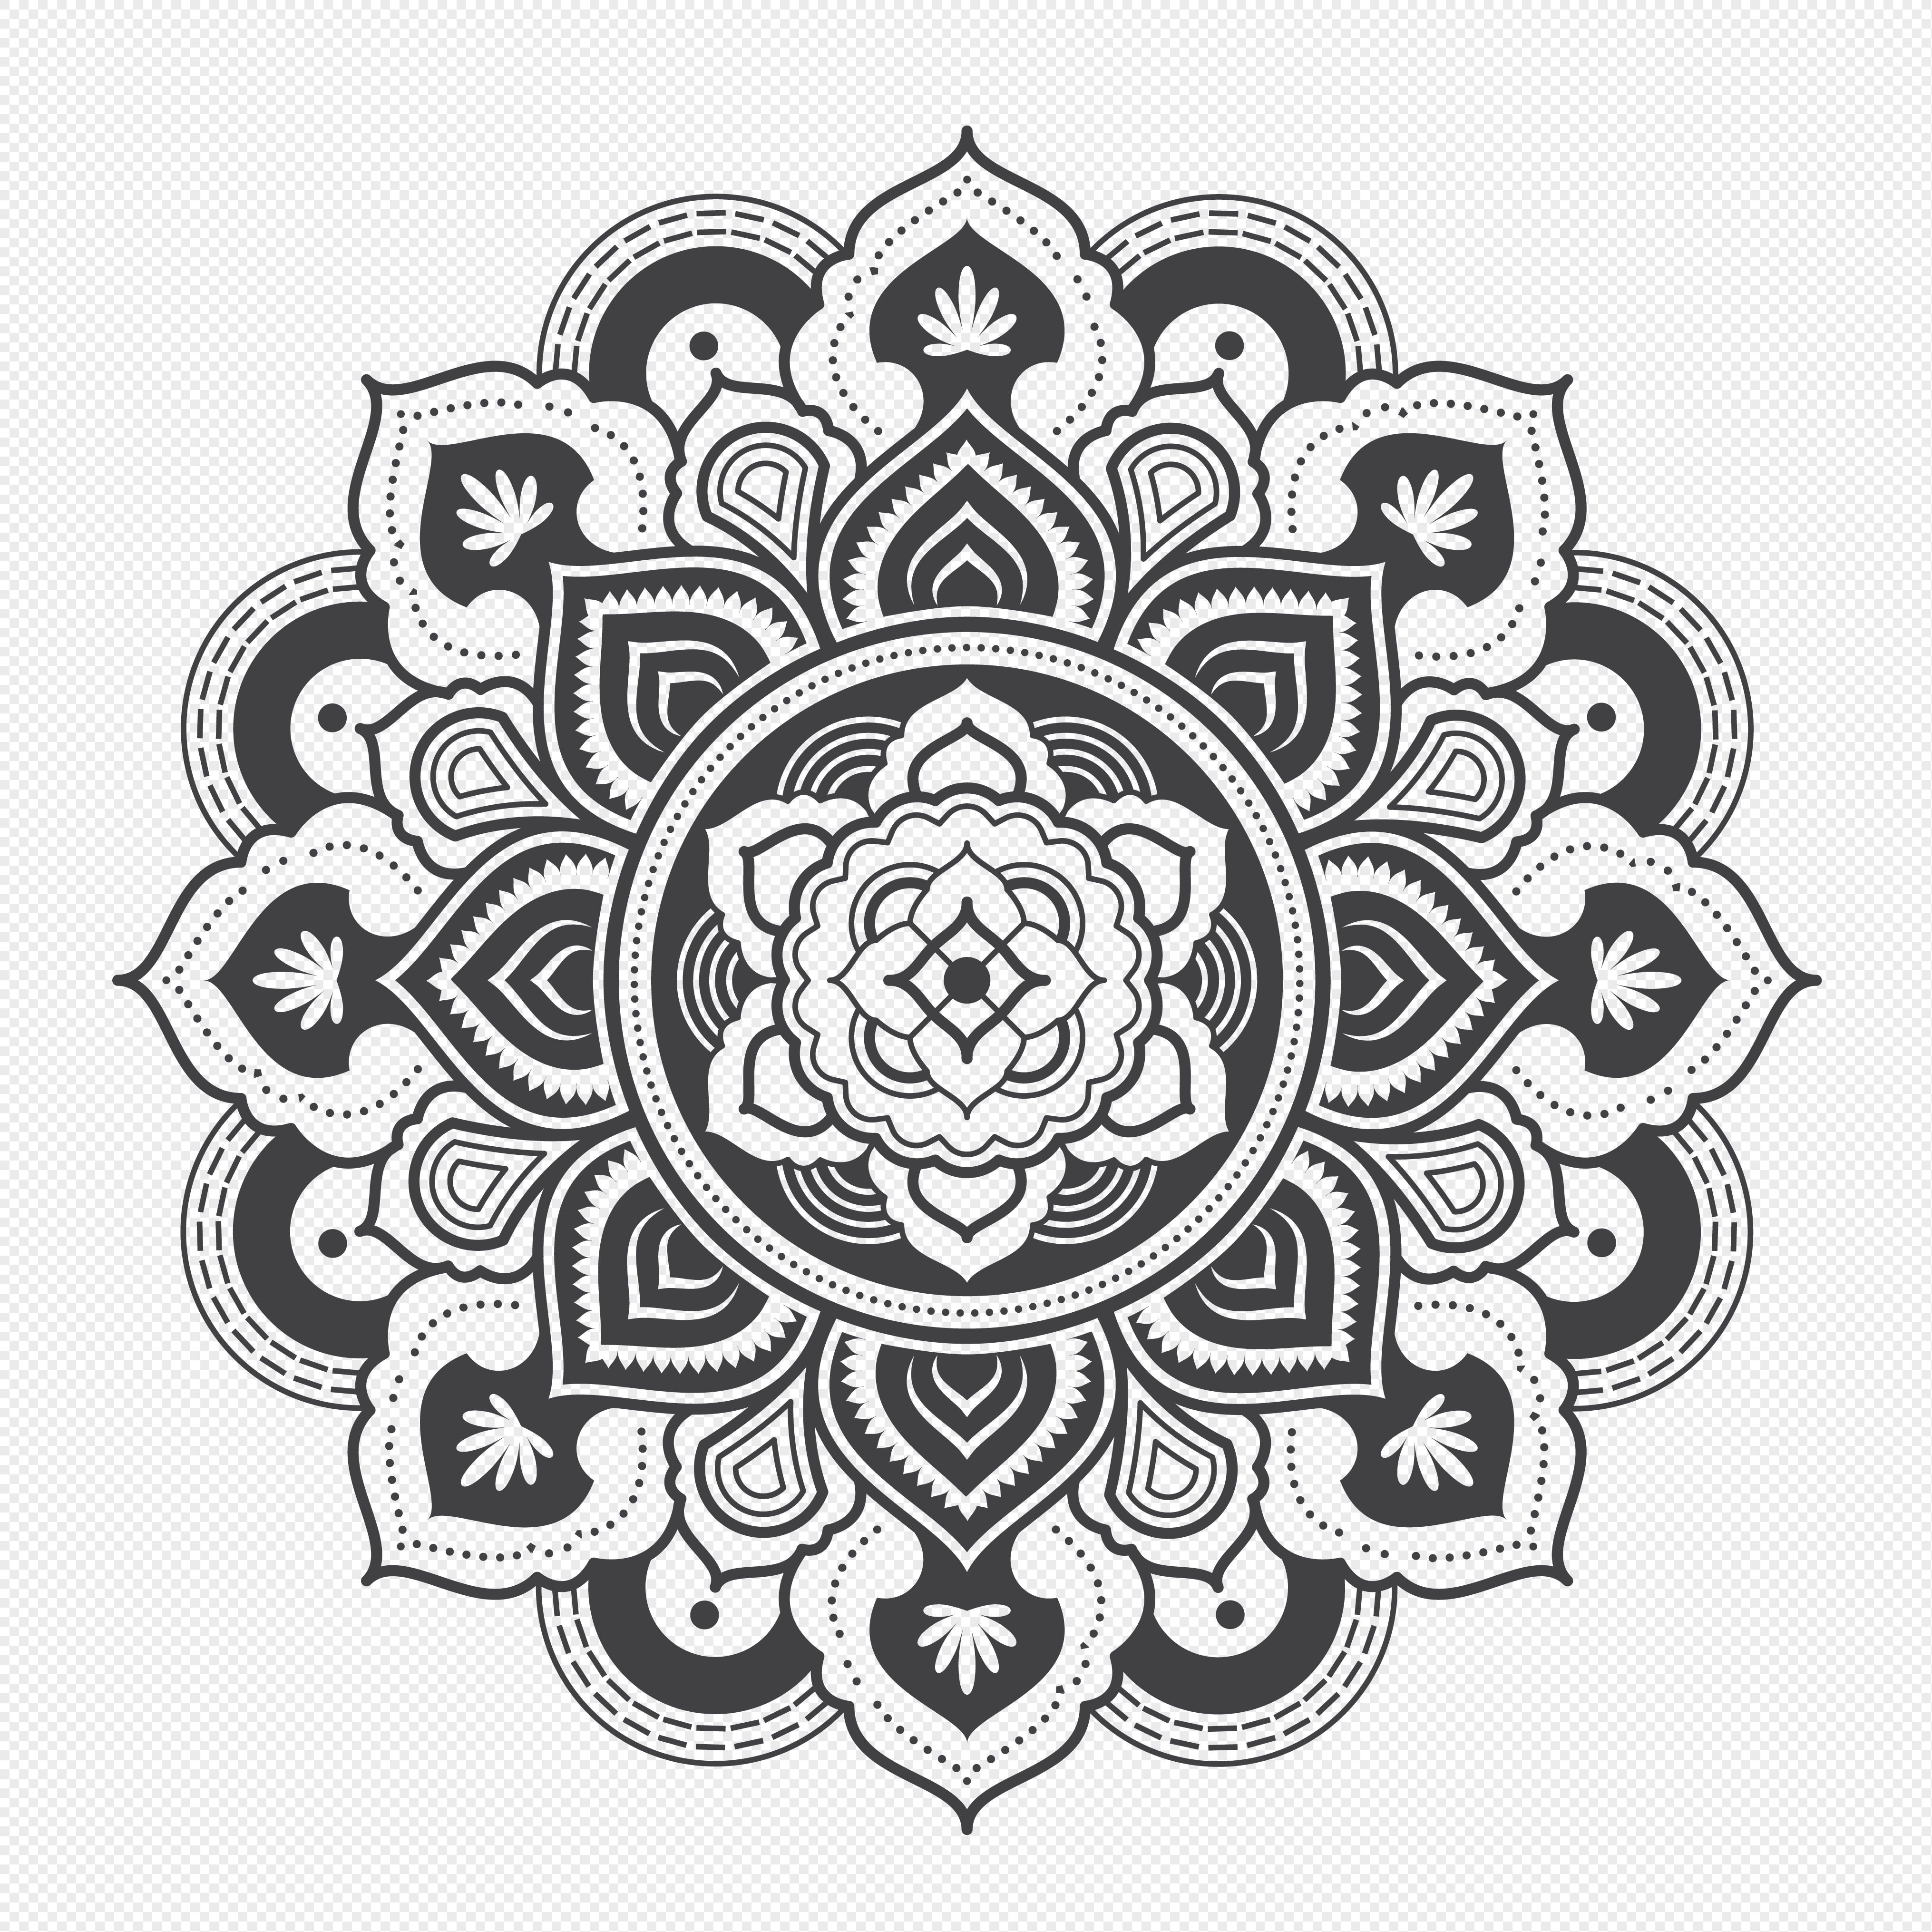 Lotus flower pattern material png imagepicture free download lotus flower pattern material izmirmasajfo